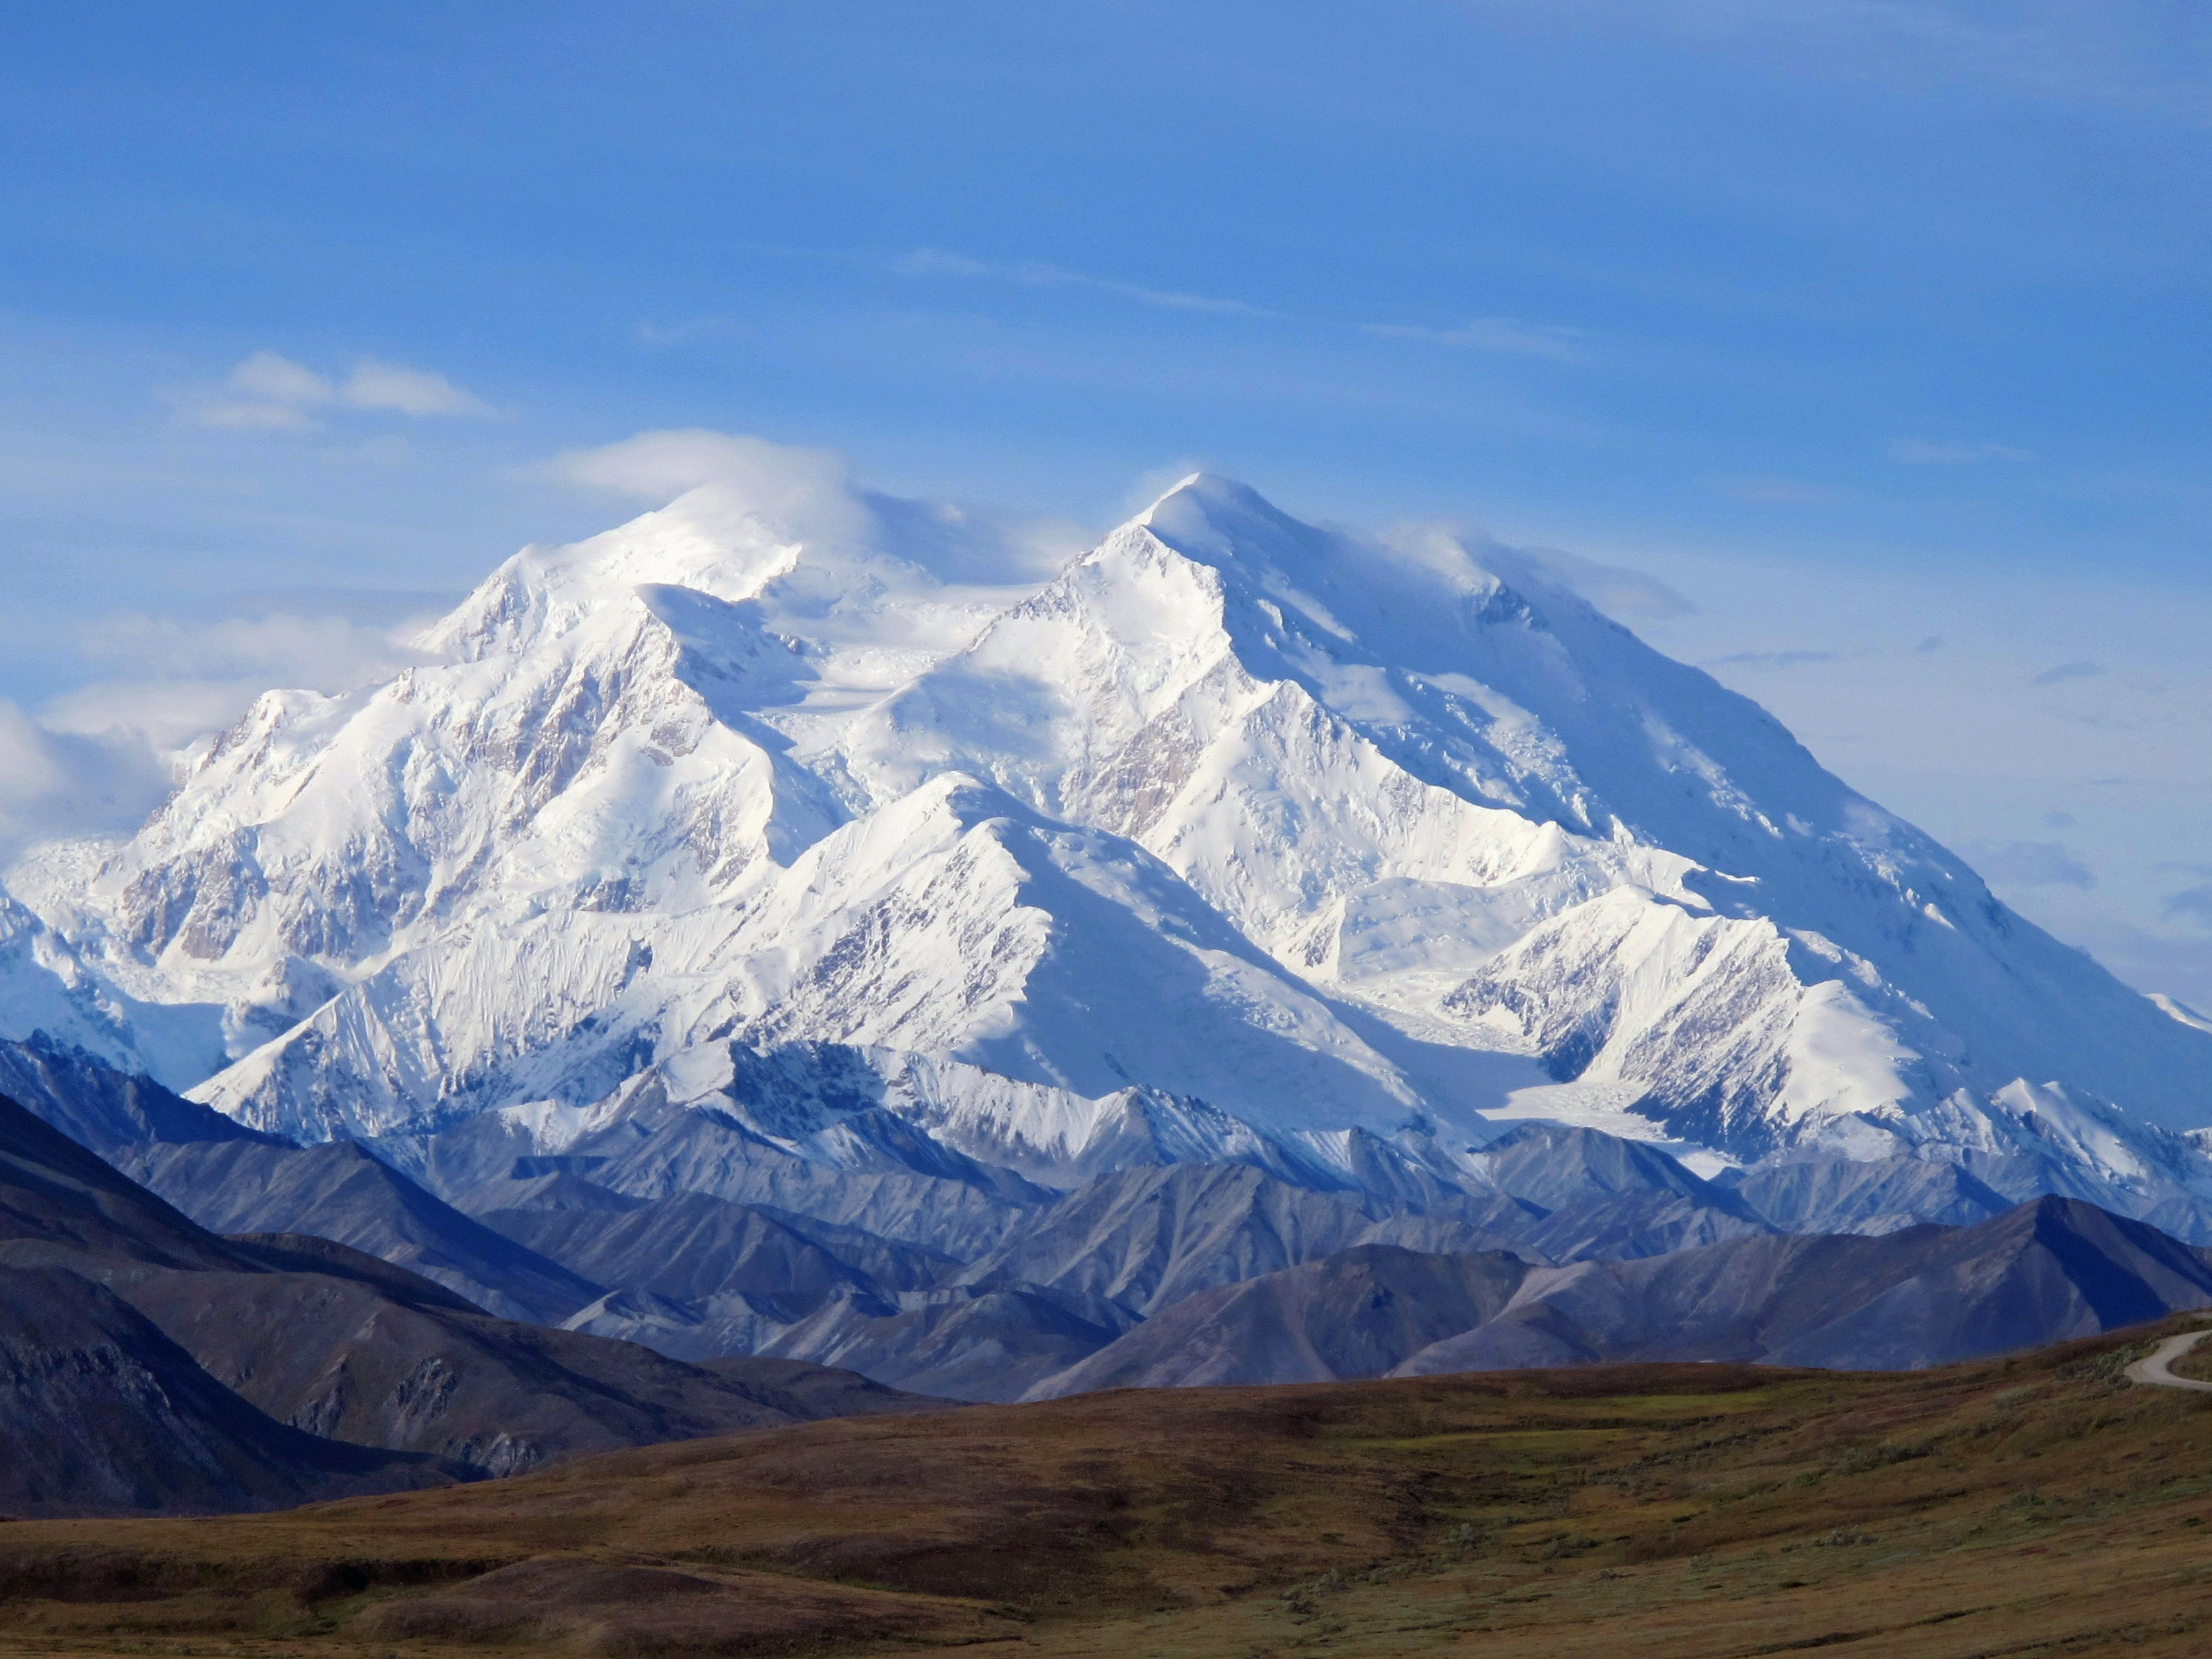 Mount McKinley name change: America's tallest mountain to be renamed Mount Denali by President